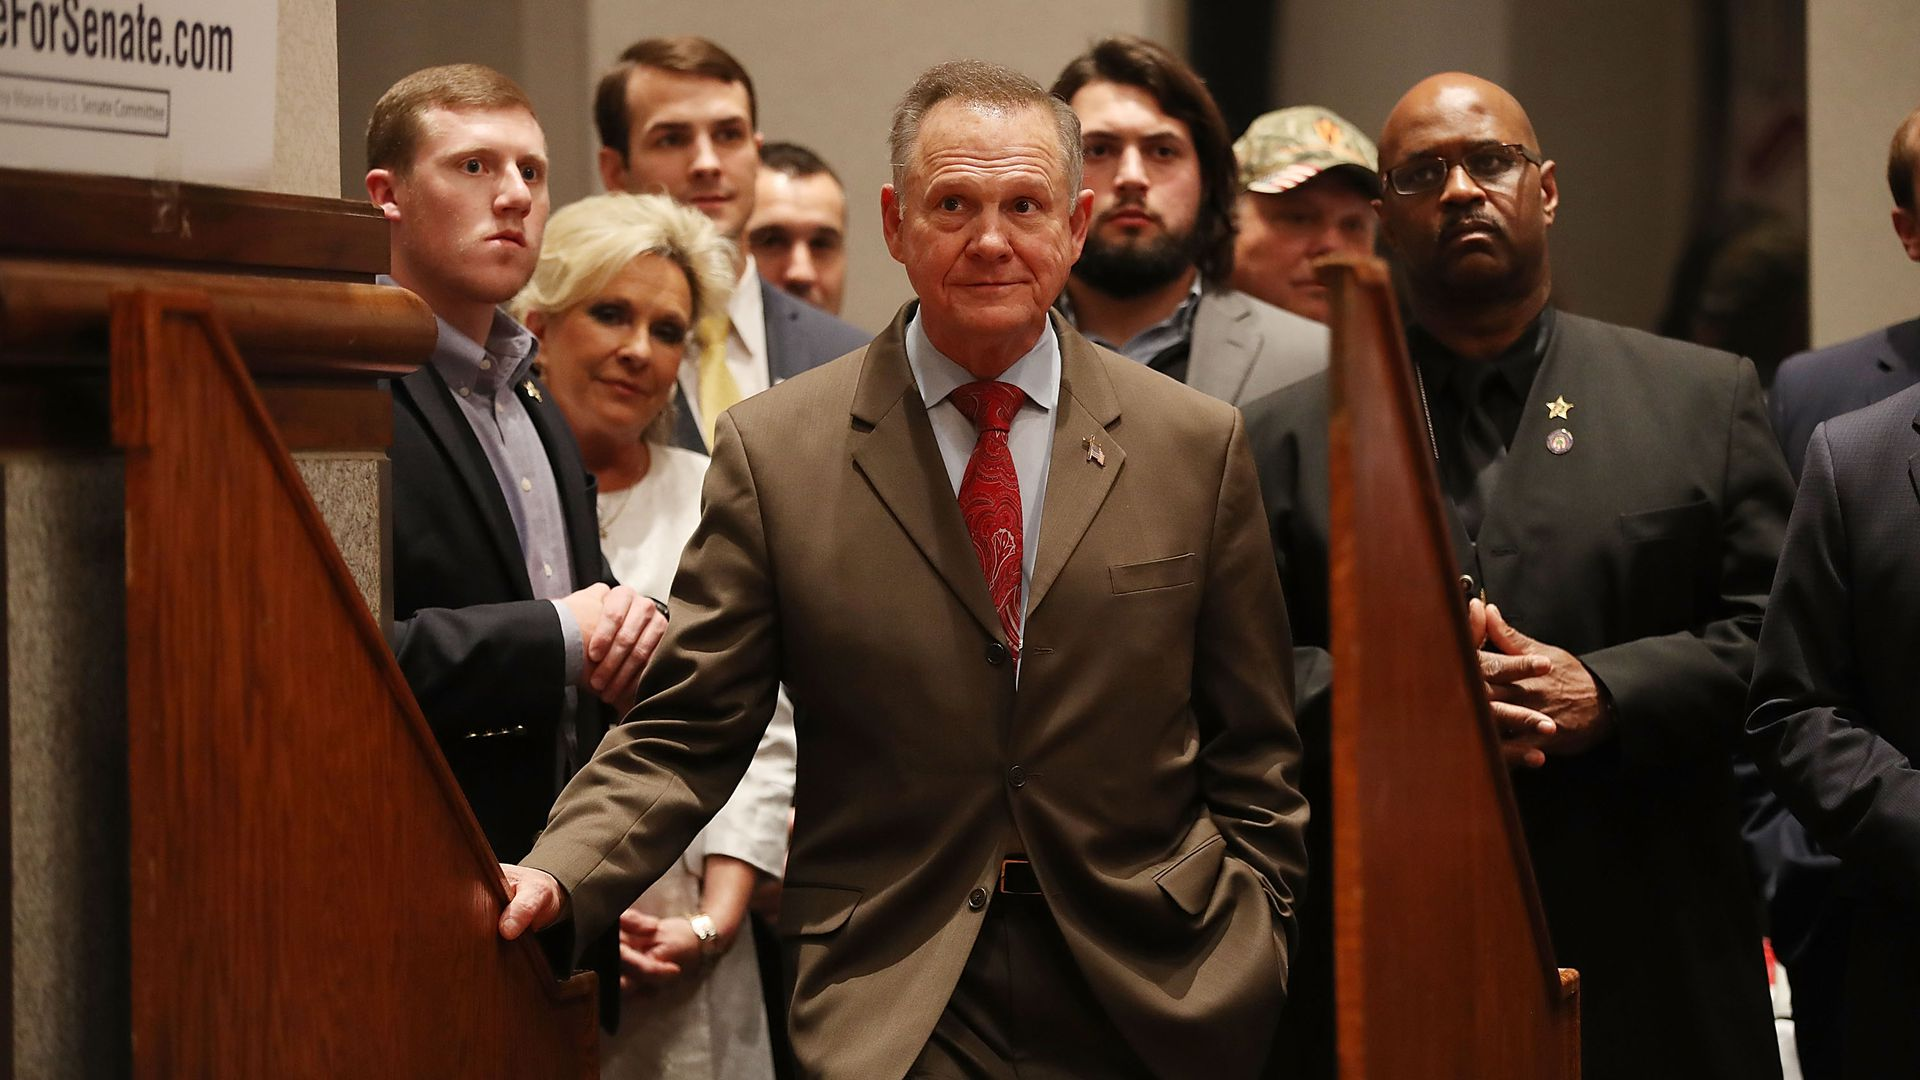 Roy Moore with a group behind him.